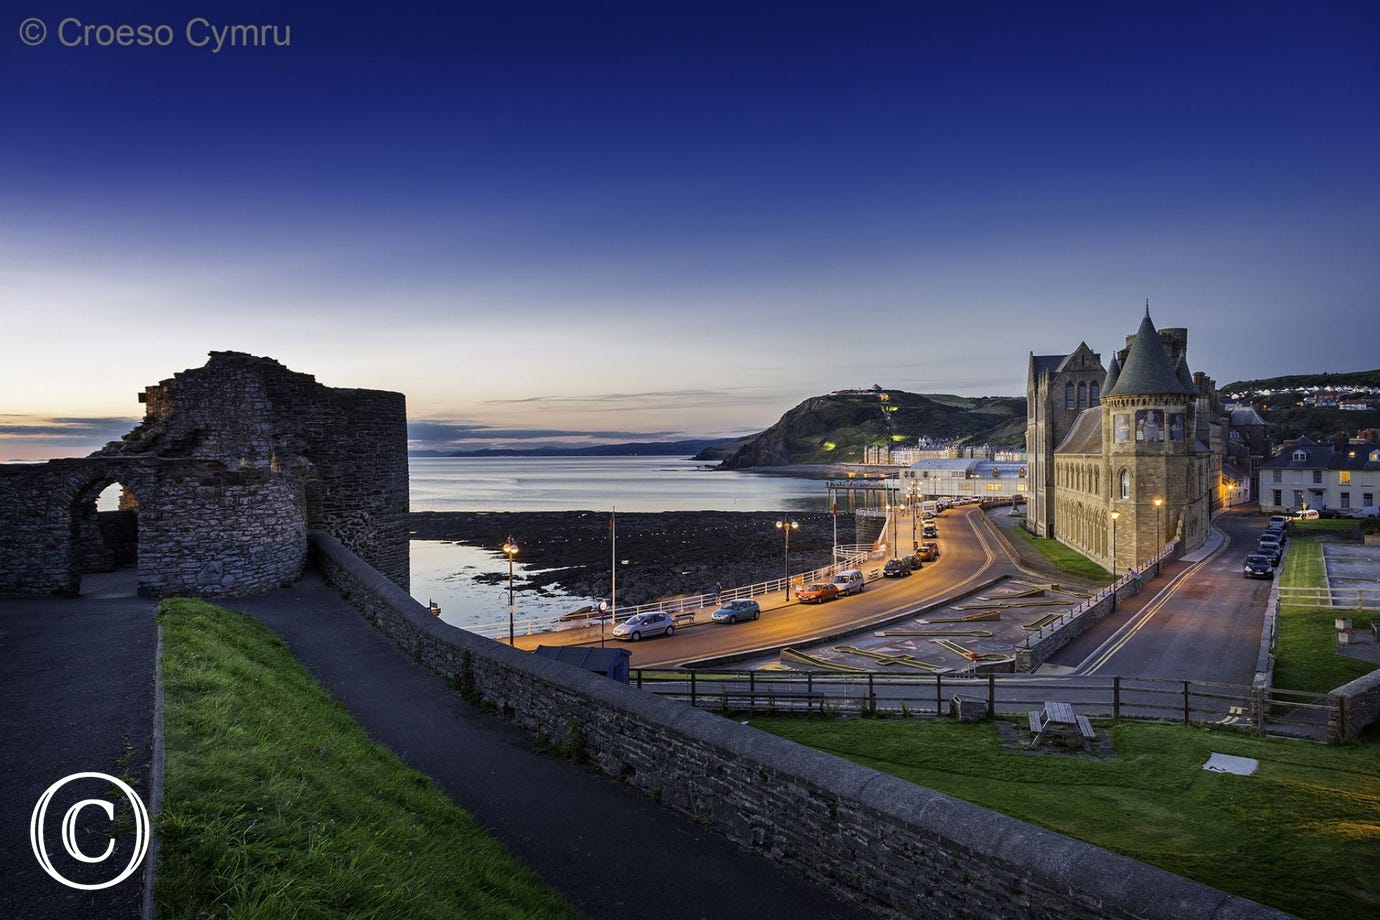 Just up the road from your holiday cottage Aberystwyth is a lovely seaside town with plenty of restaurants, pubs and cafes